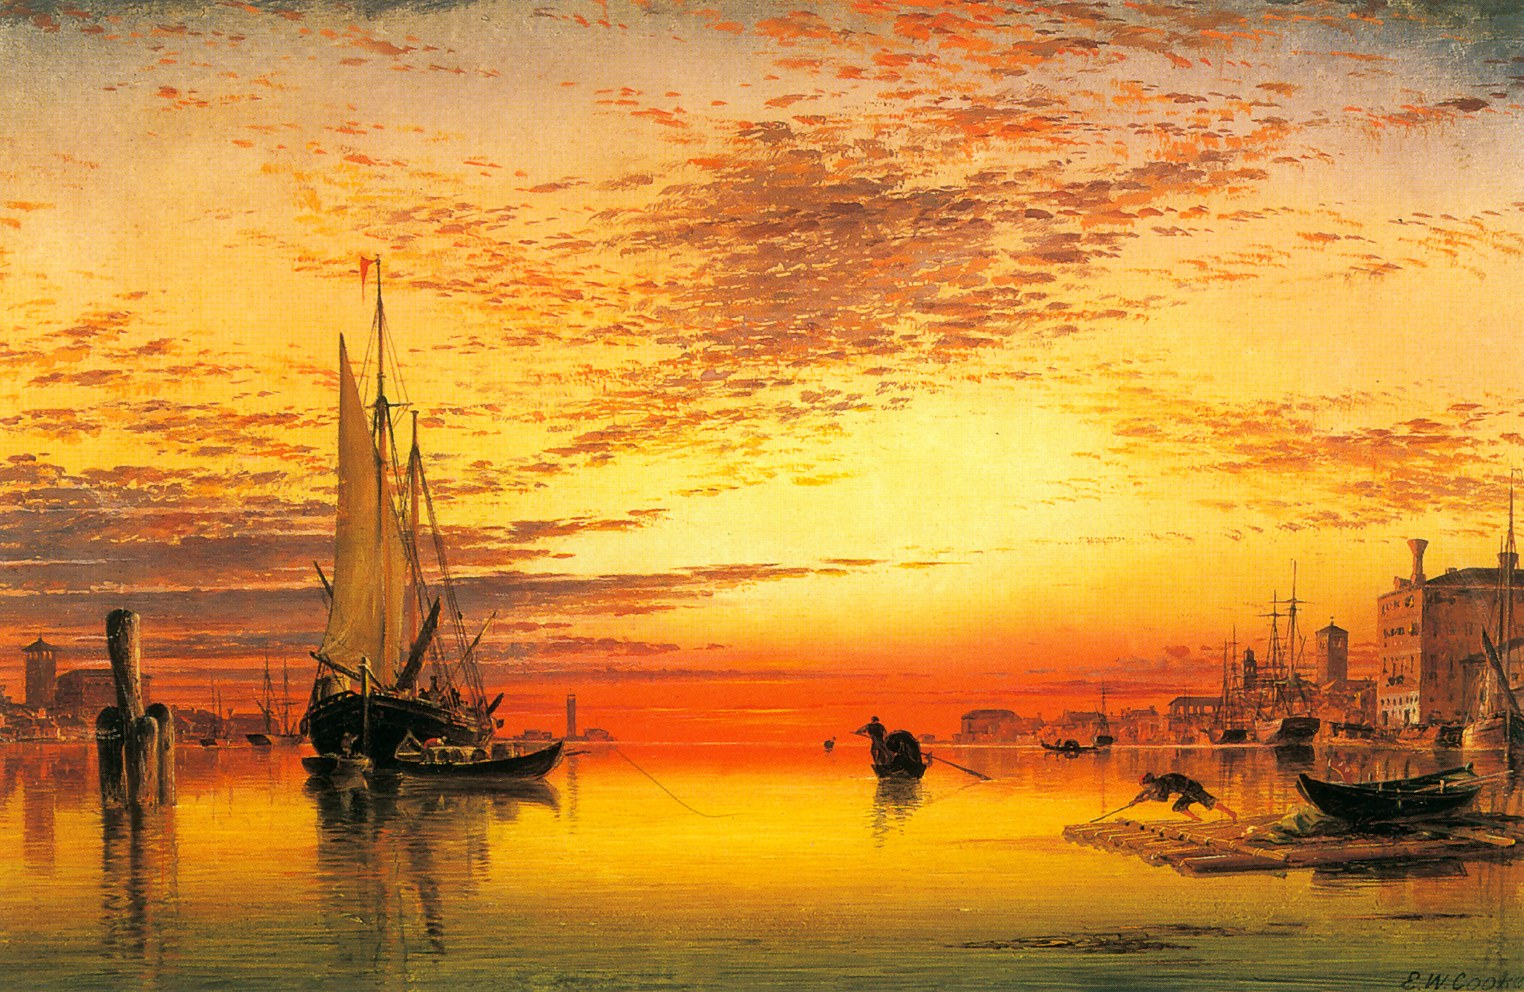 Oil Painting Backgrounds, Compatible - PC, Mobile, Gadgets| 1524x992 px